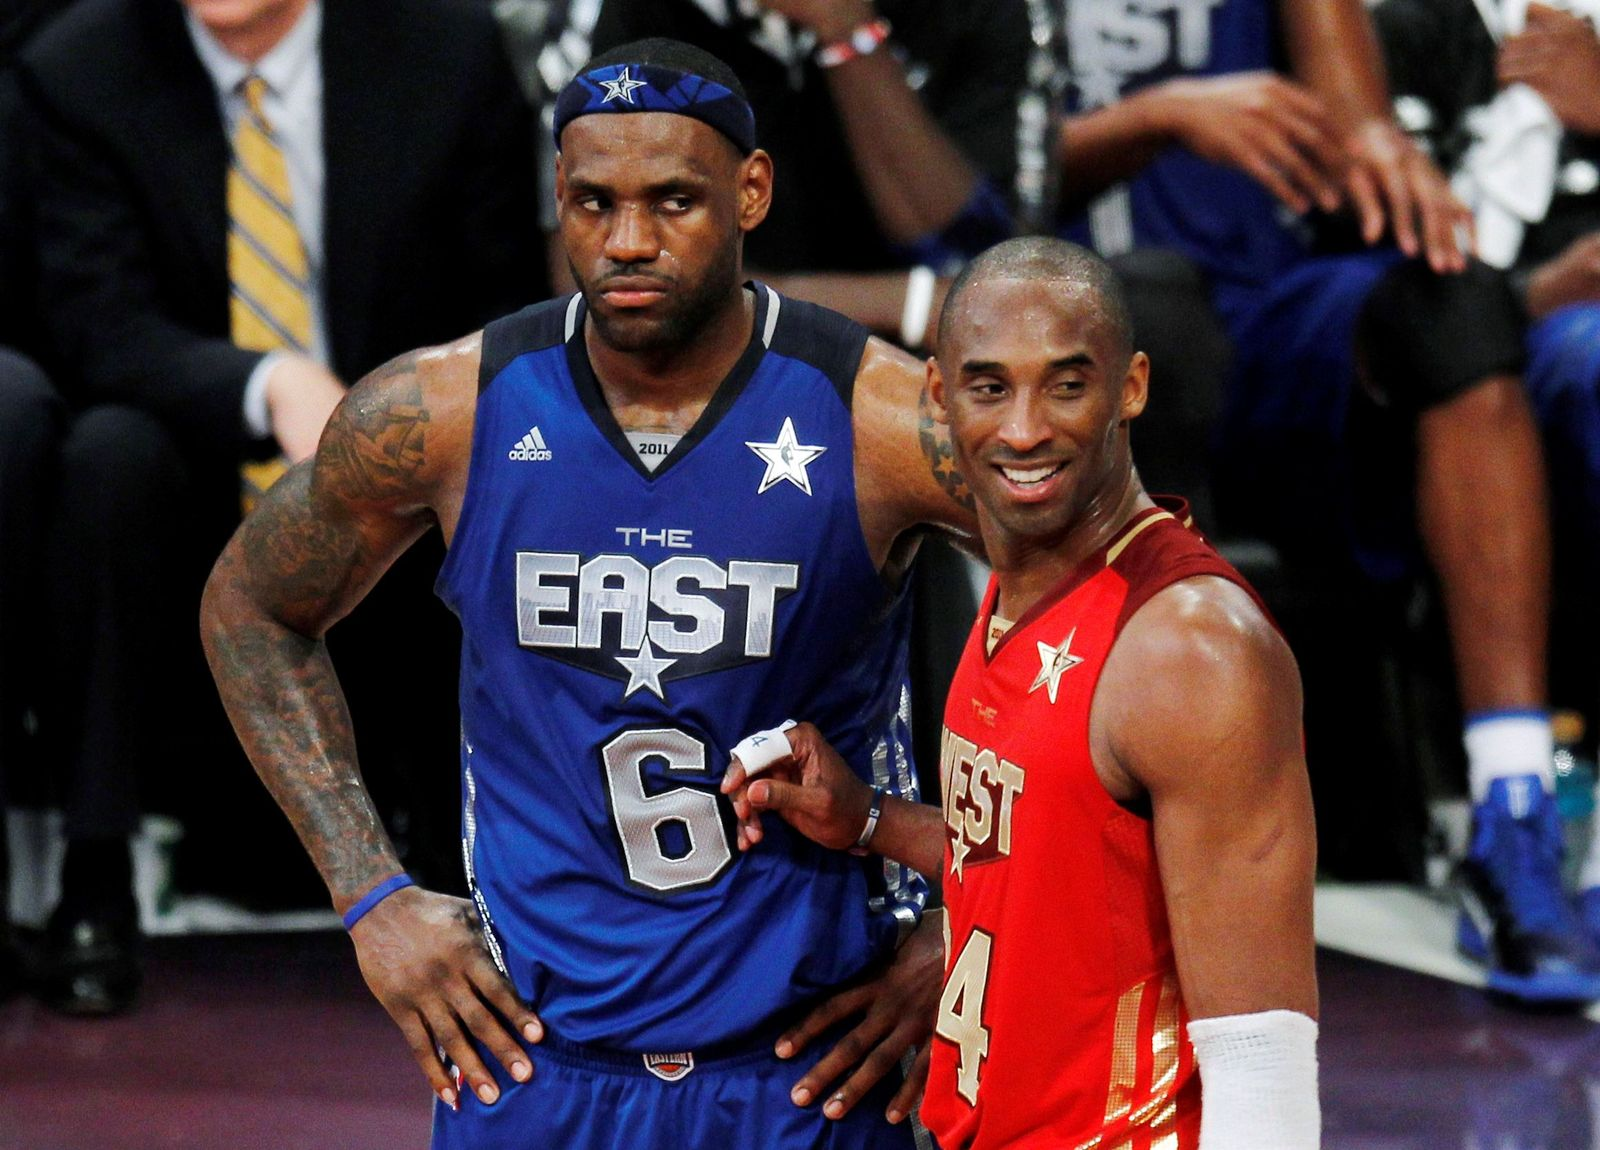 FILE PHOTO: West All Star Bryant of the Lakers stands with East All Star James of the Heat near the end of the NBA All-Star basketball game in Los Angeles